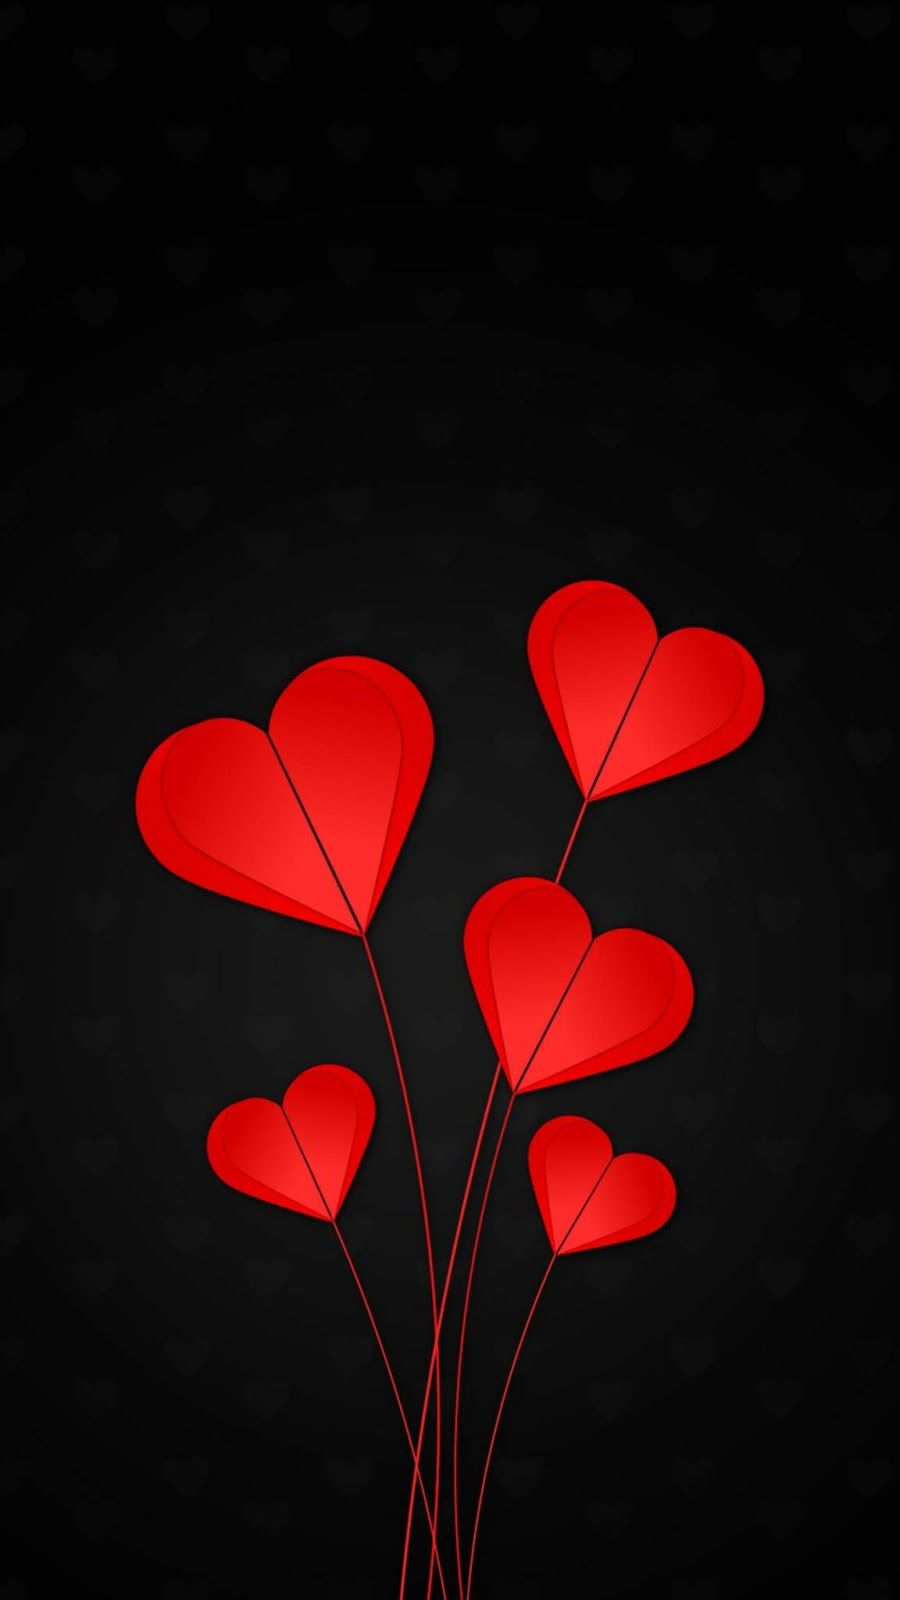 Hearts Red Black Background Black Background Wallpaper Red And Black Background Heart Wallpaper